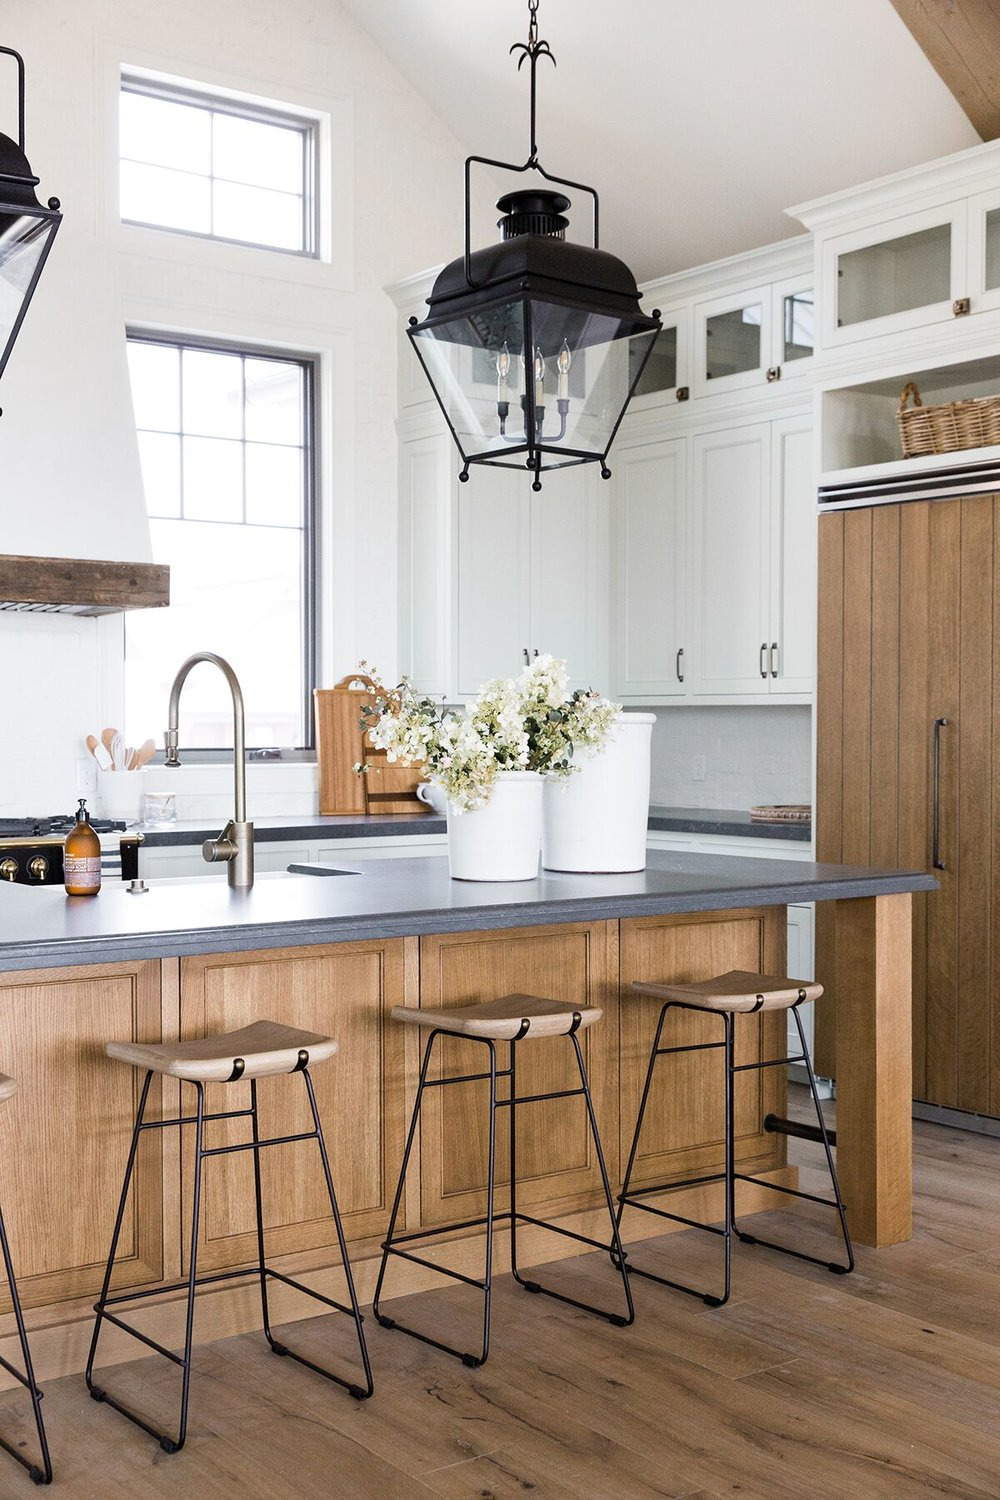 Refined, rustic kitchen with exposed wooden beams, hanging lanterns, painted white brick, oven range in mountain home - Studio McGee Design